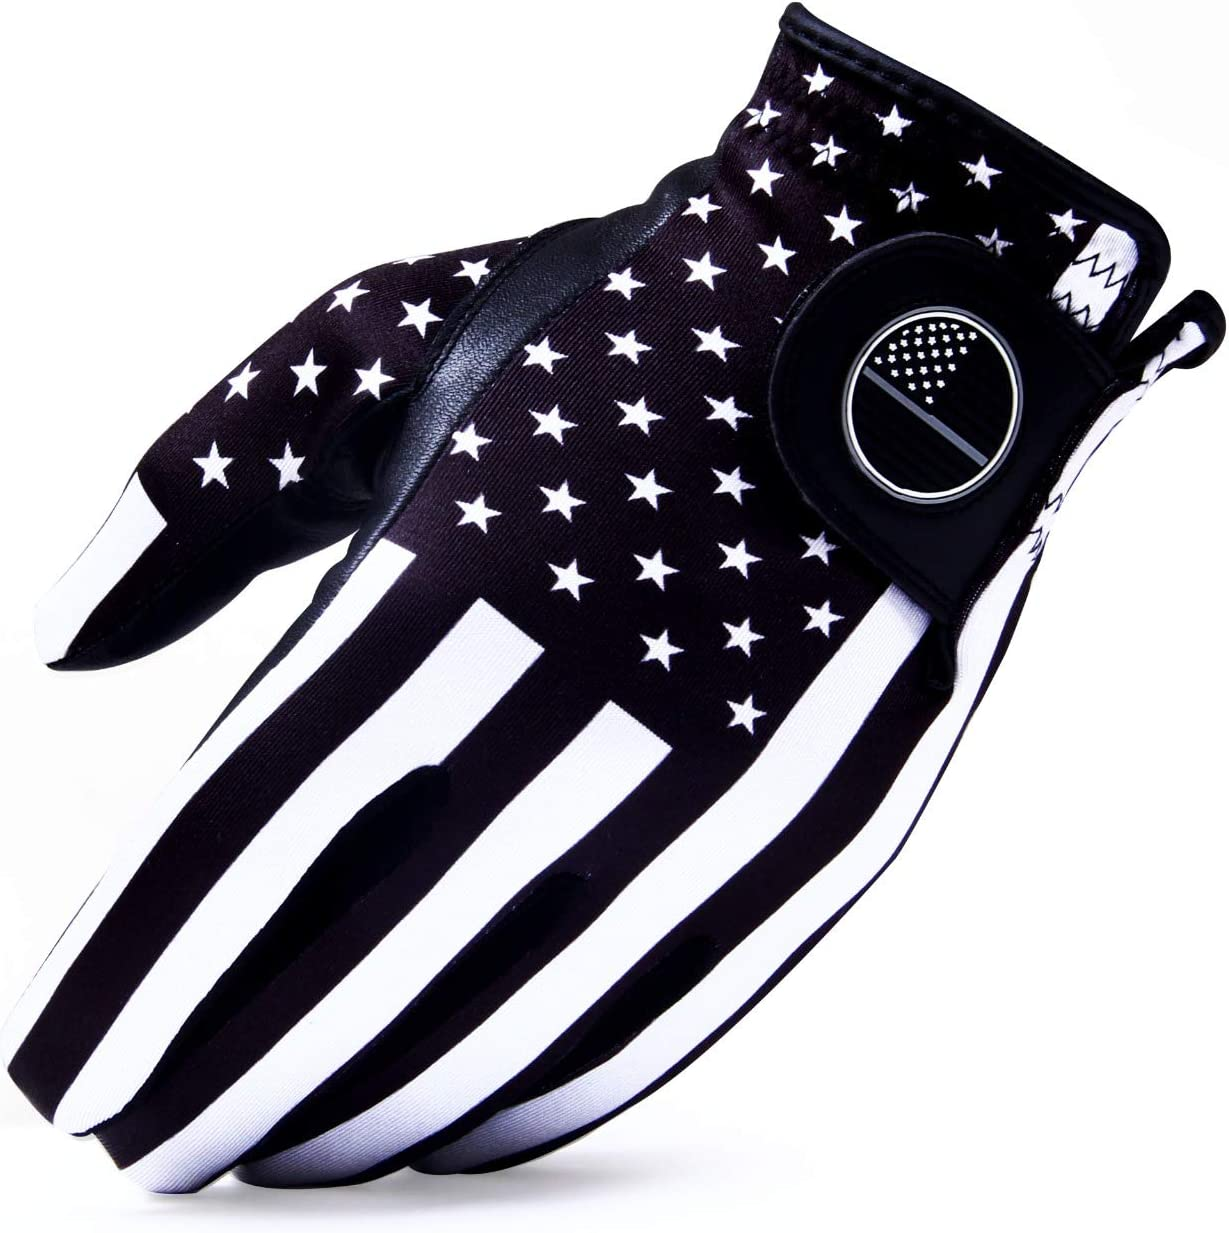 RAULAM INTERNATIONAL USA Flag Golf Gloves with Perfect Grip for Men and Women,Golf Glove American Flag Left Hand-Golf Glove Men Left Hand/Right Hand,Golf Glove Women Left/Right (Black).